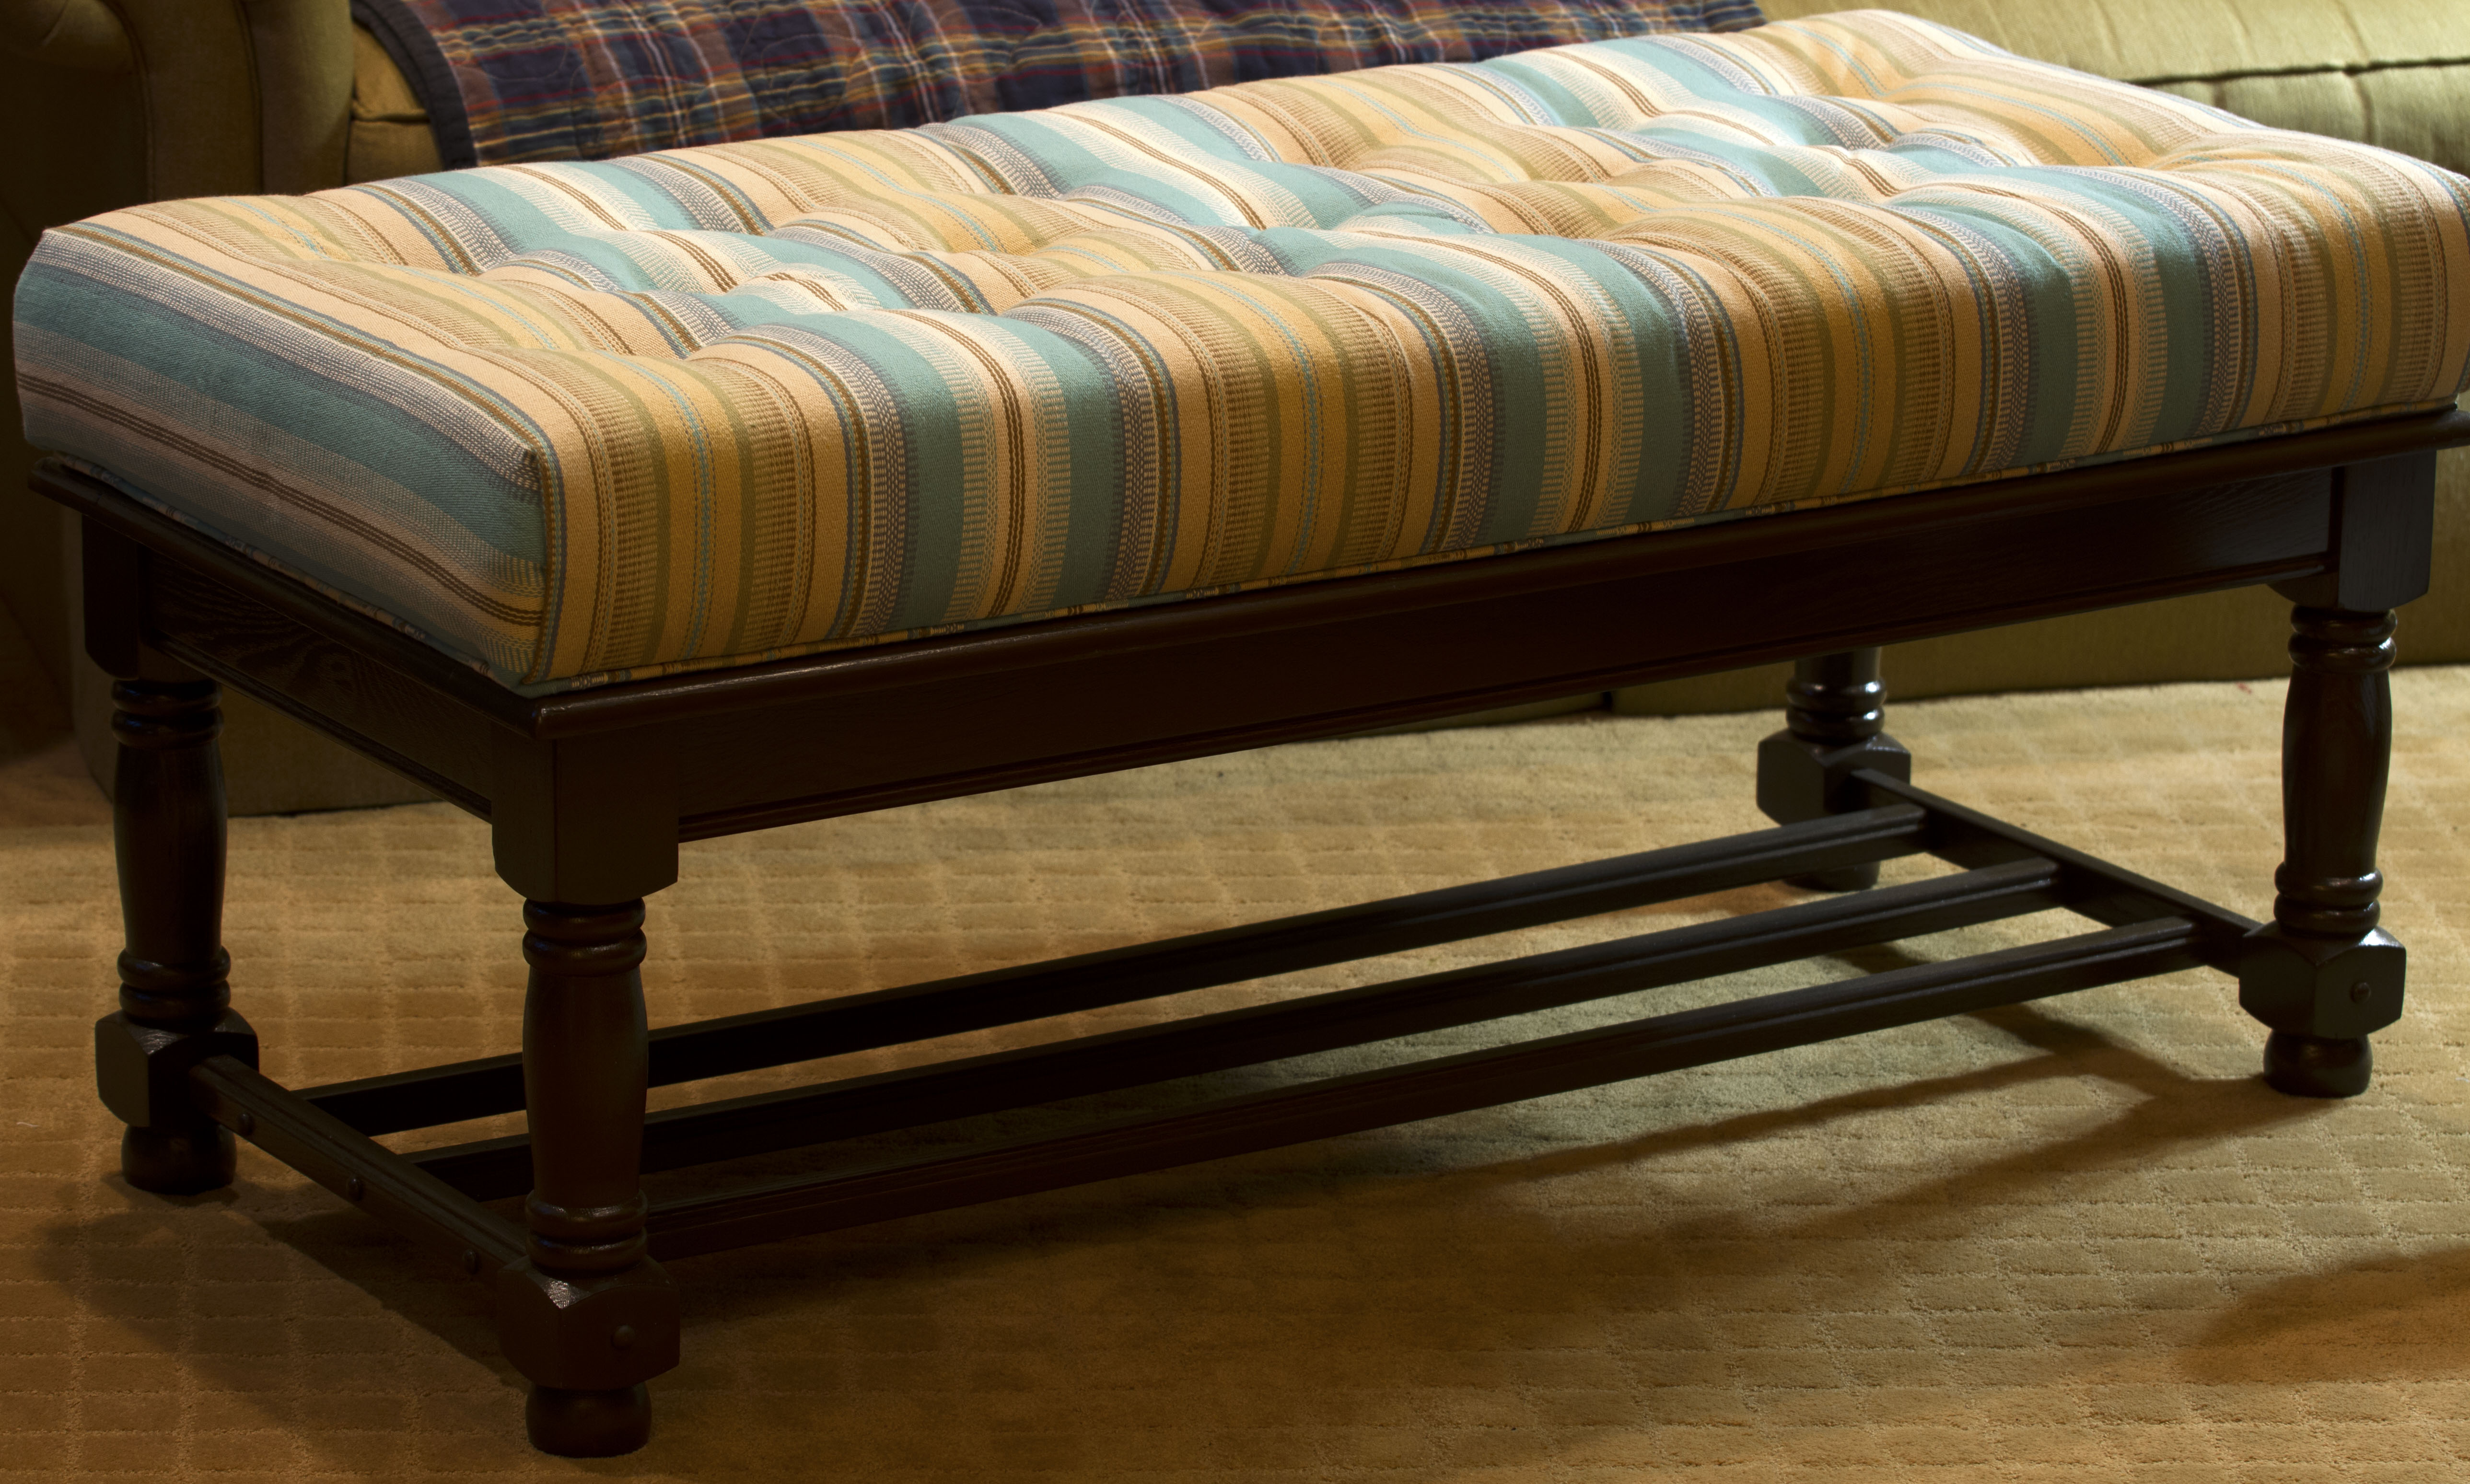 From Coffee Table to Upholstered Bench Life at the Cottage